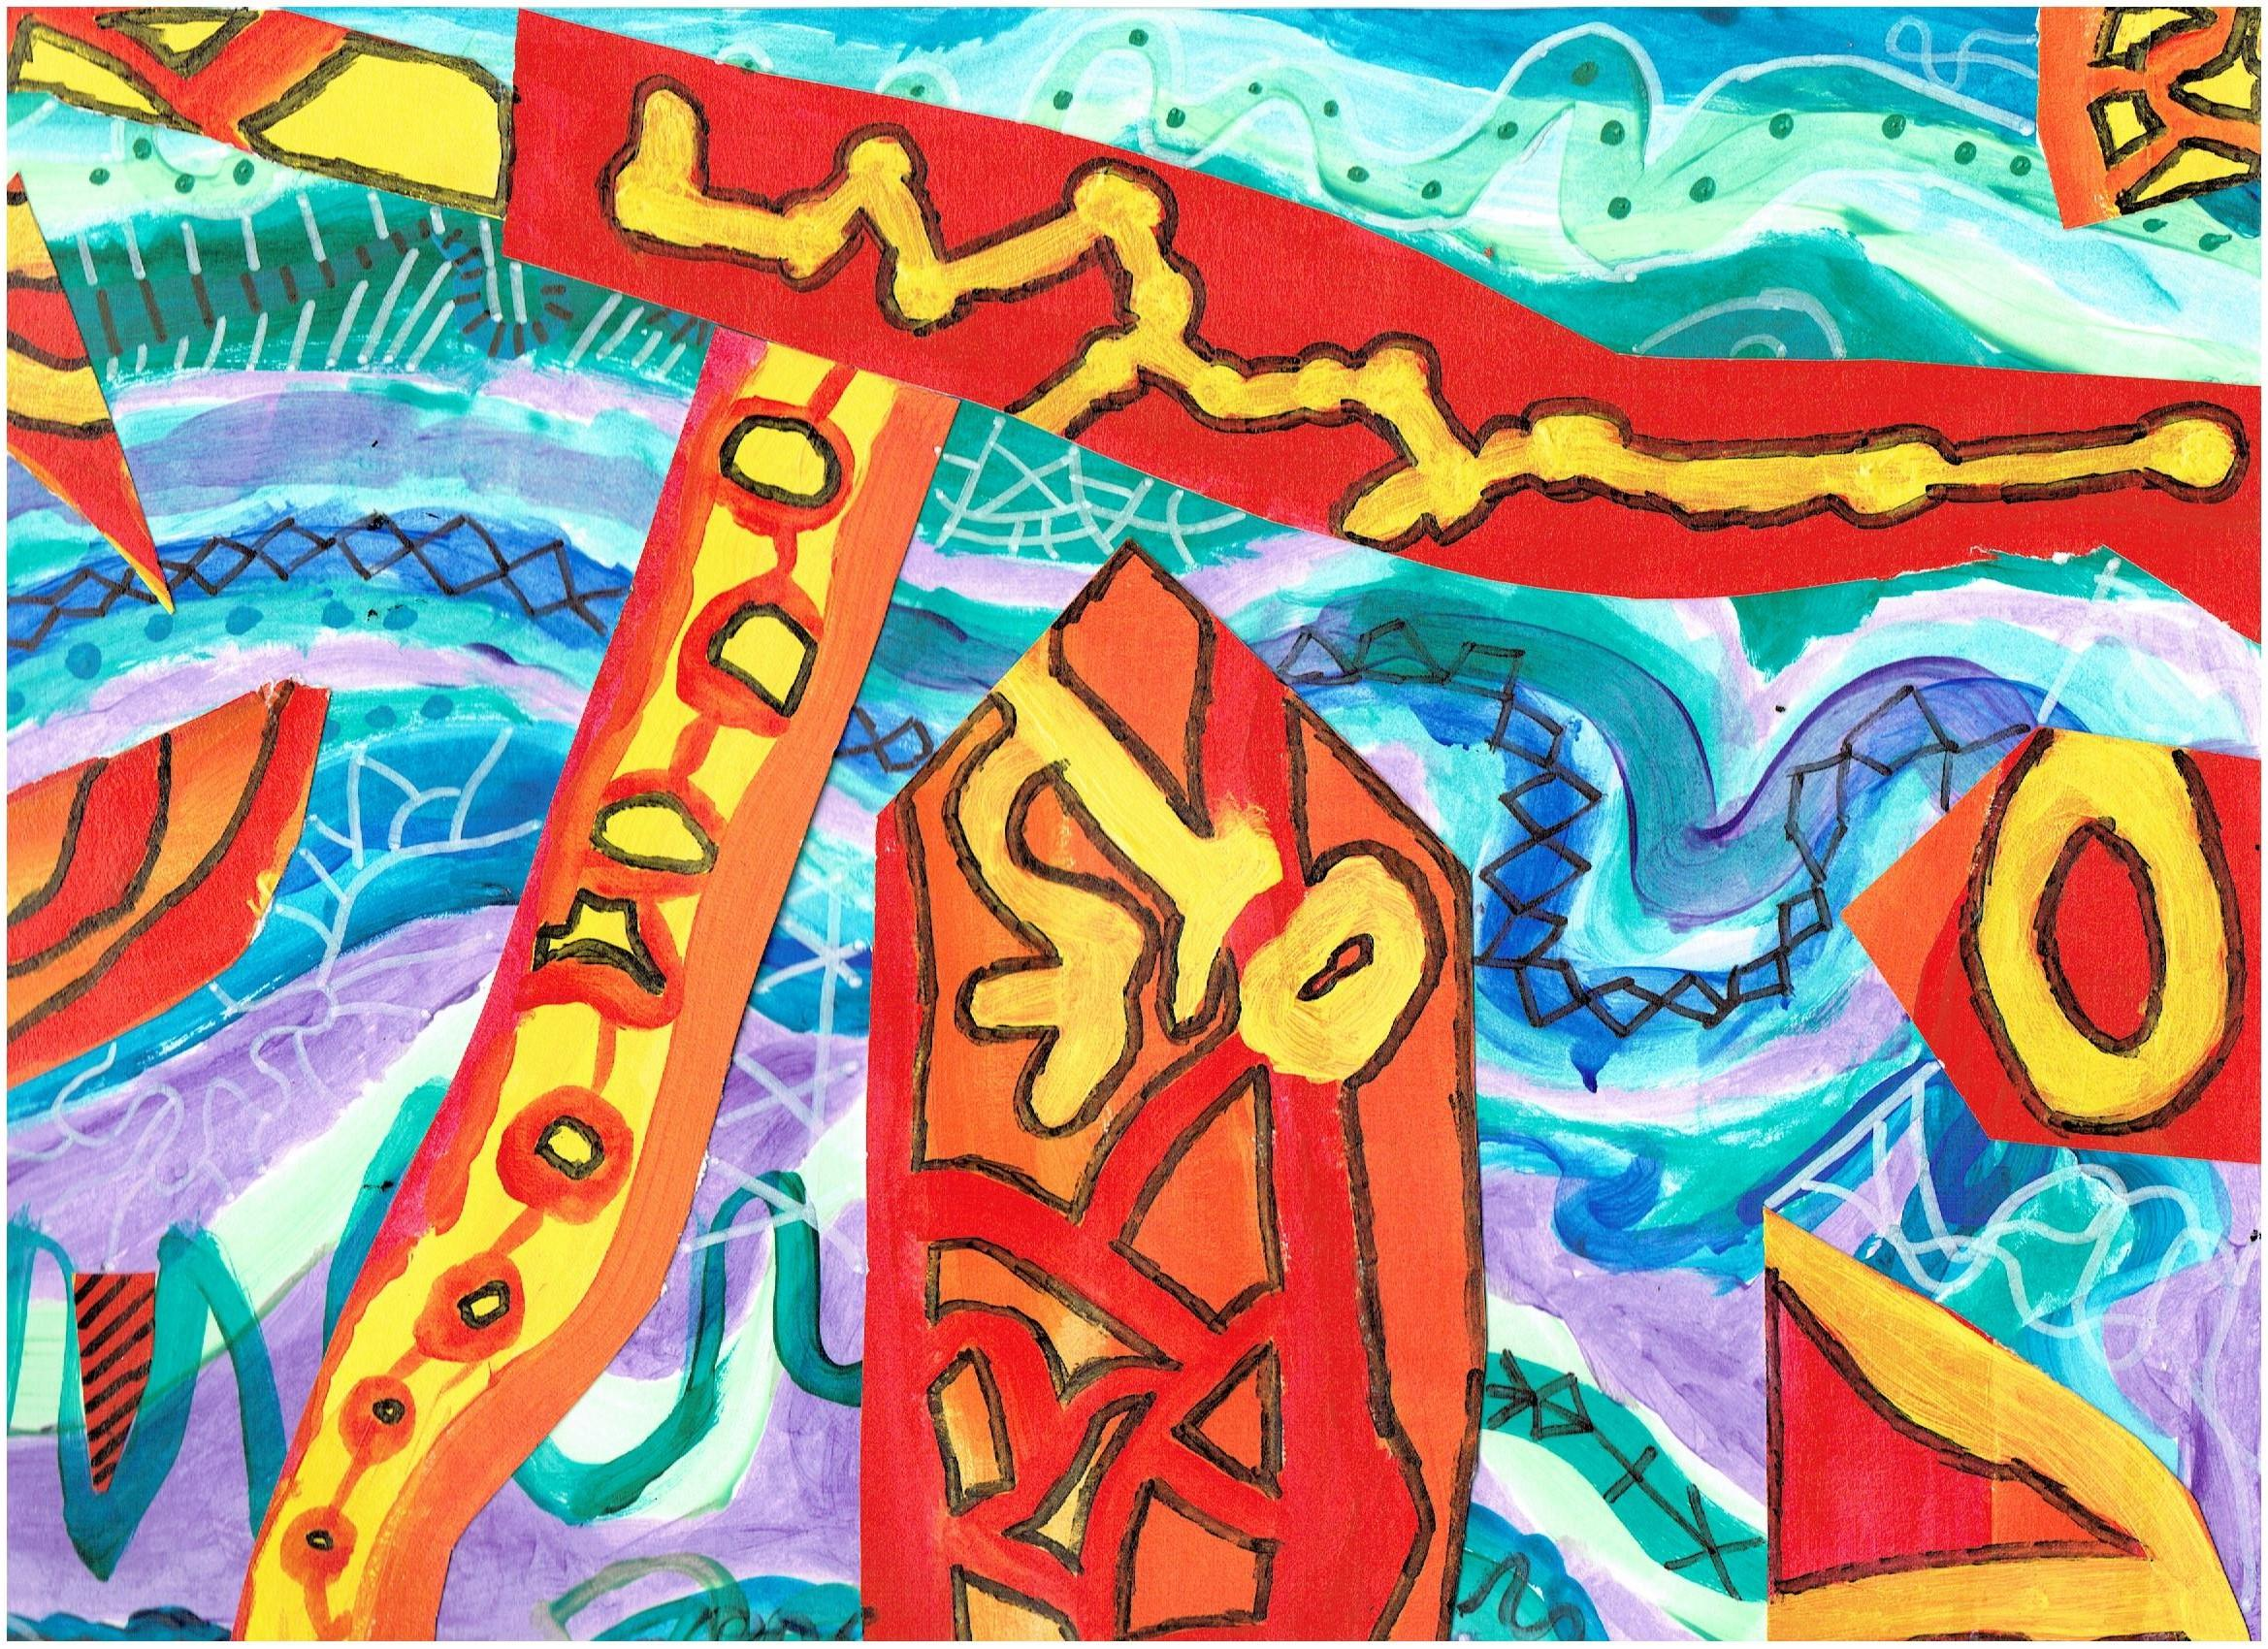 A colorful collage created by a Hunterdon Prep student in the style of artist, Friedensreich Huntertwasser.